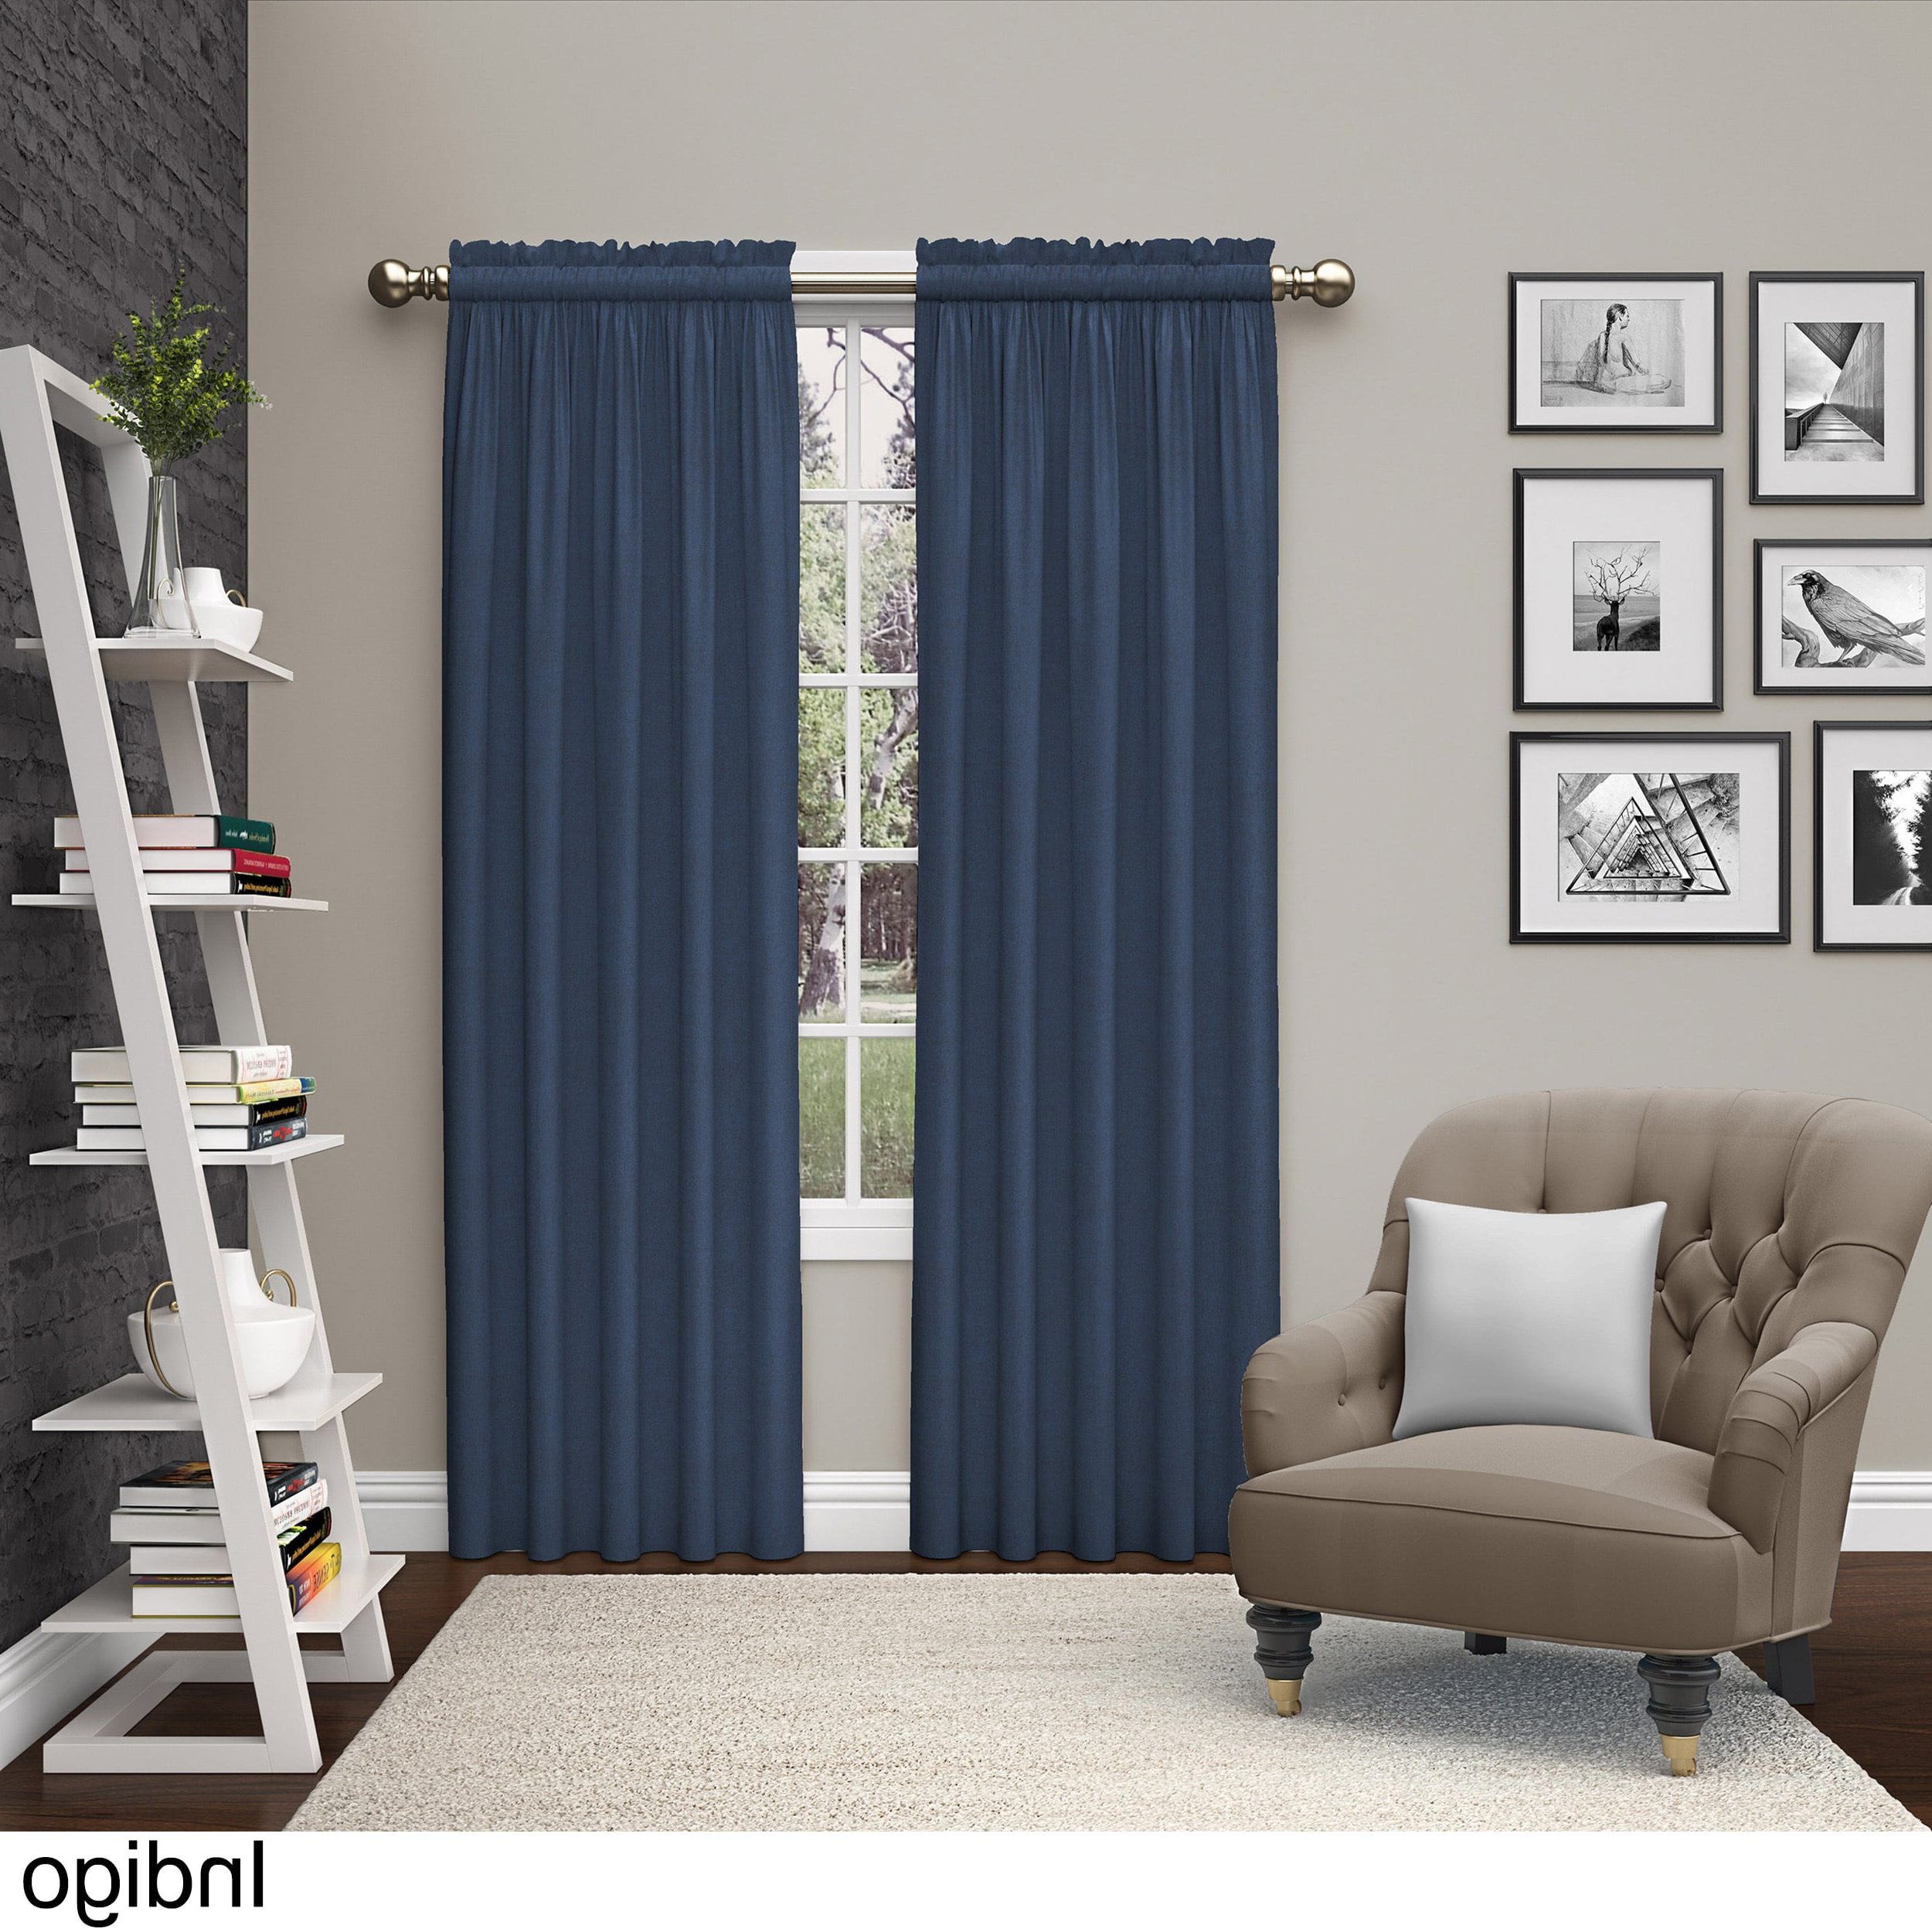 Curtain Panel Pairs In Widely Used Pairs To Go Teller 2 Pack Window Curtain Panel Pairs (View 2 of 20)